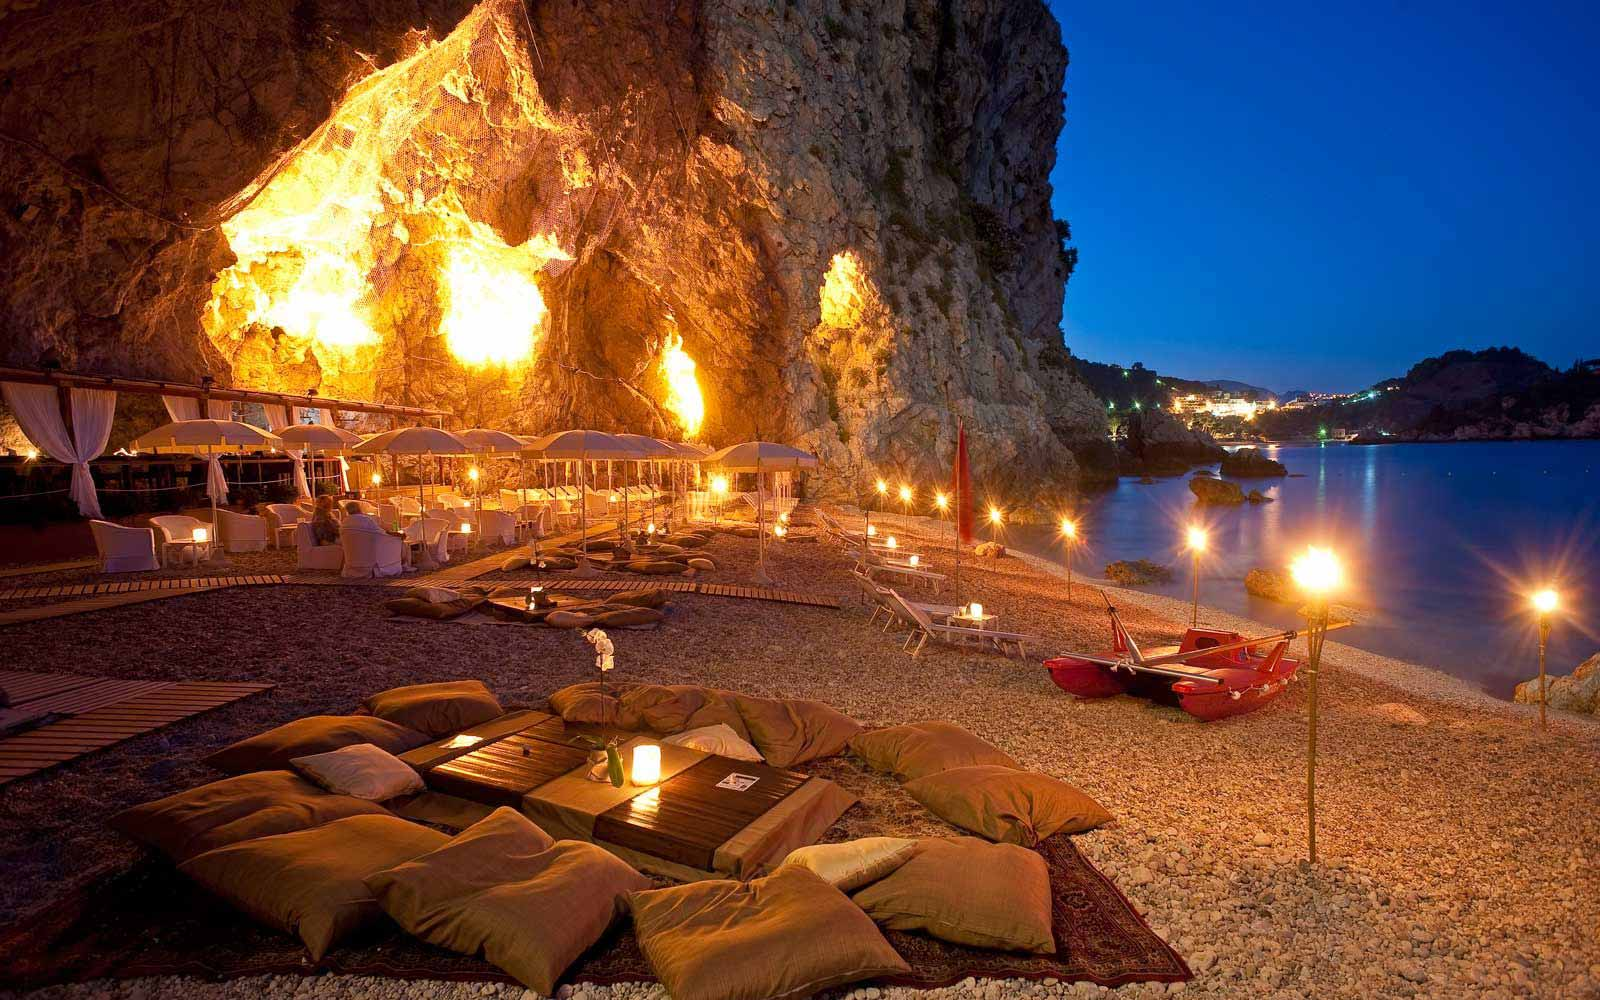 Beach cave at night at Atahotel Capotaormina